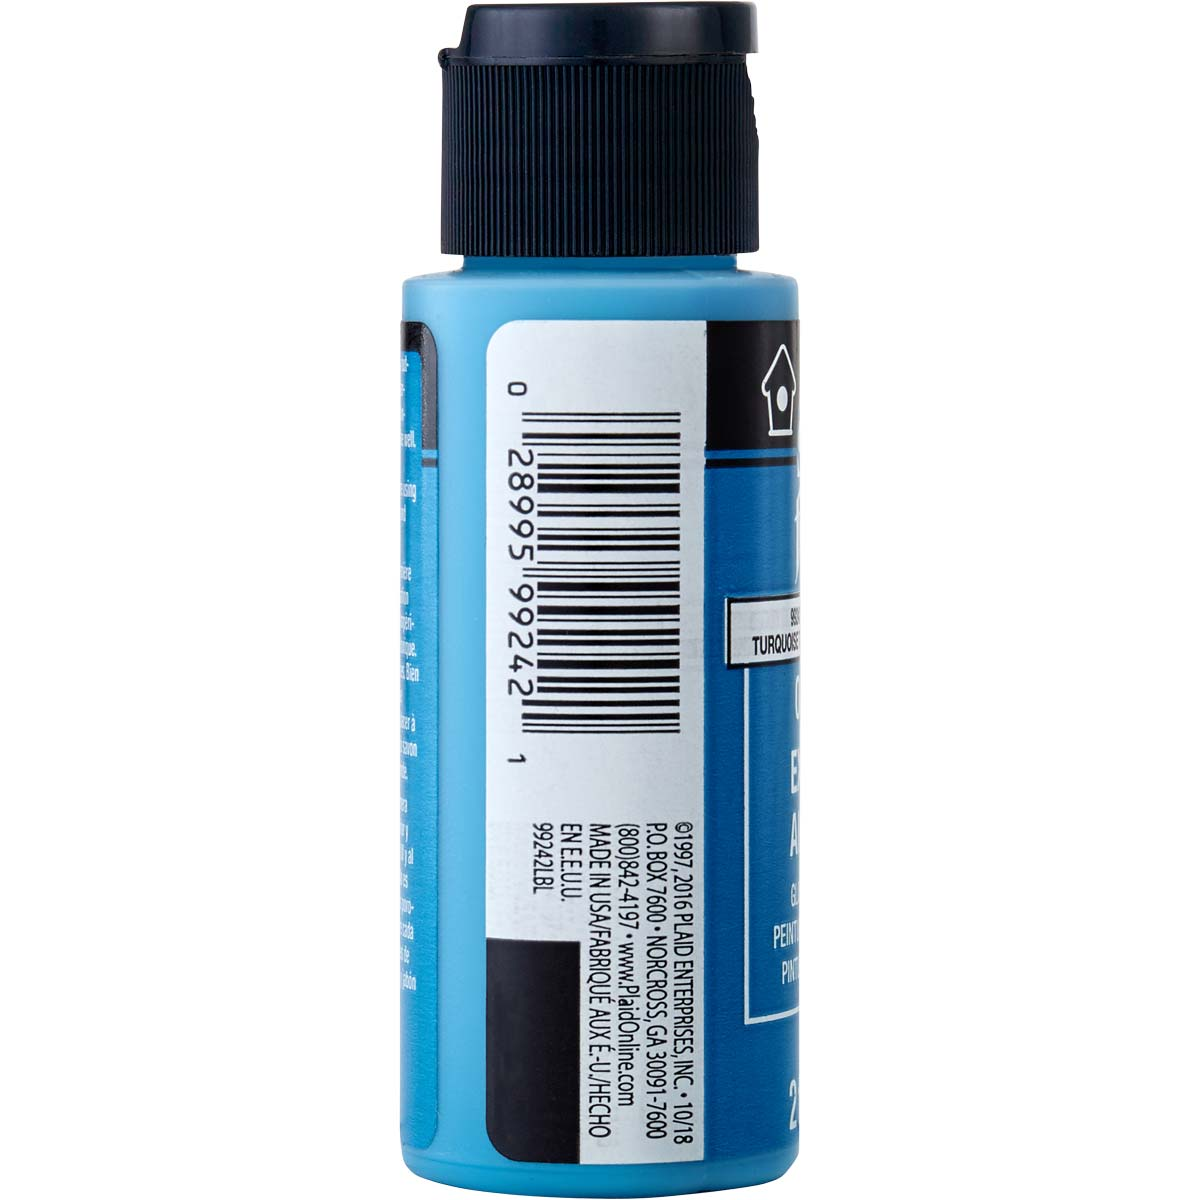 FolkArt ® Outdoor™ Acrylic Colors - Tempting Turquoise, 2 oz. - 99242